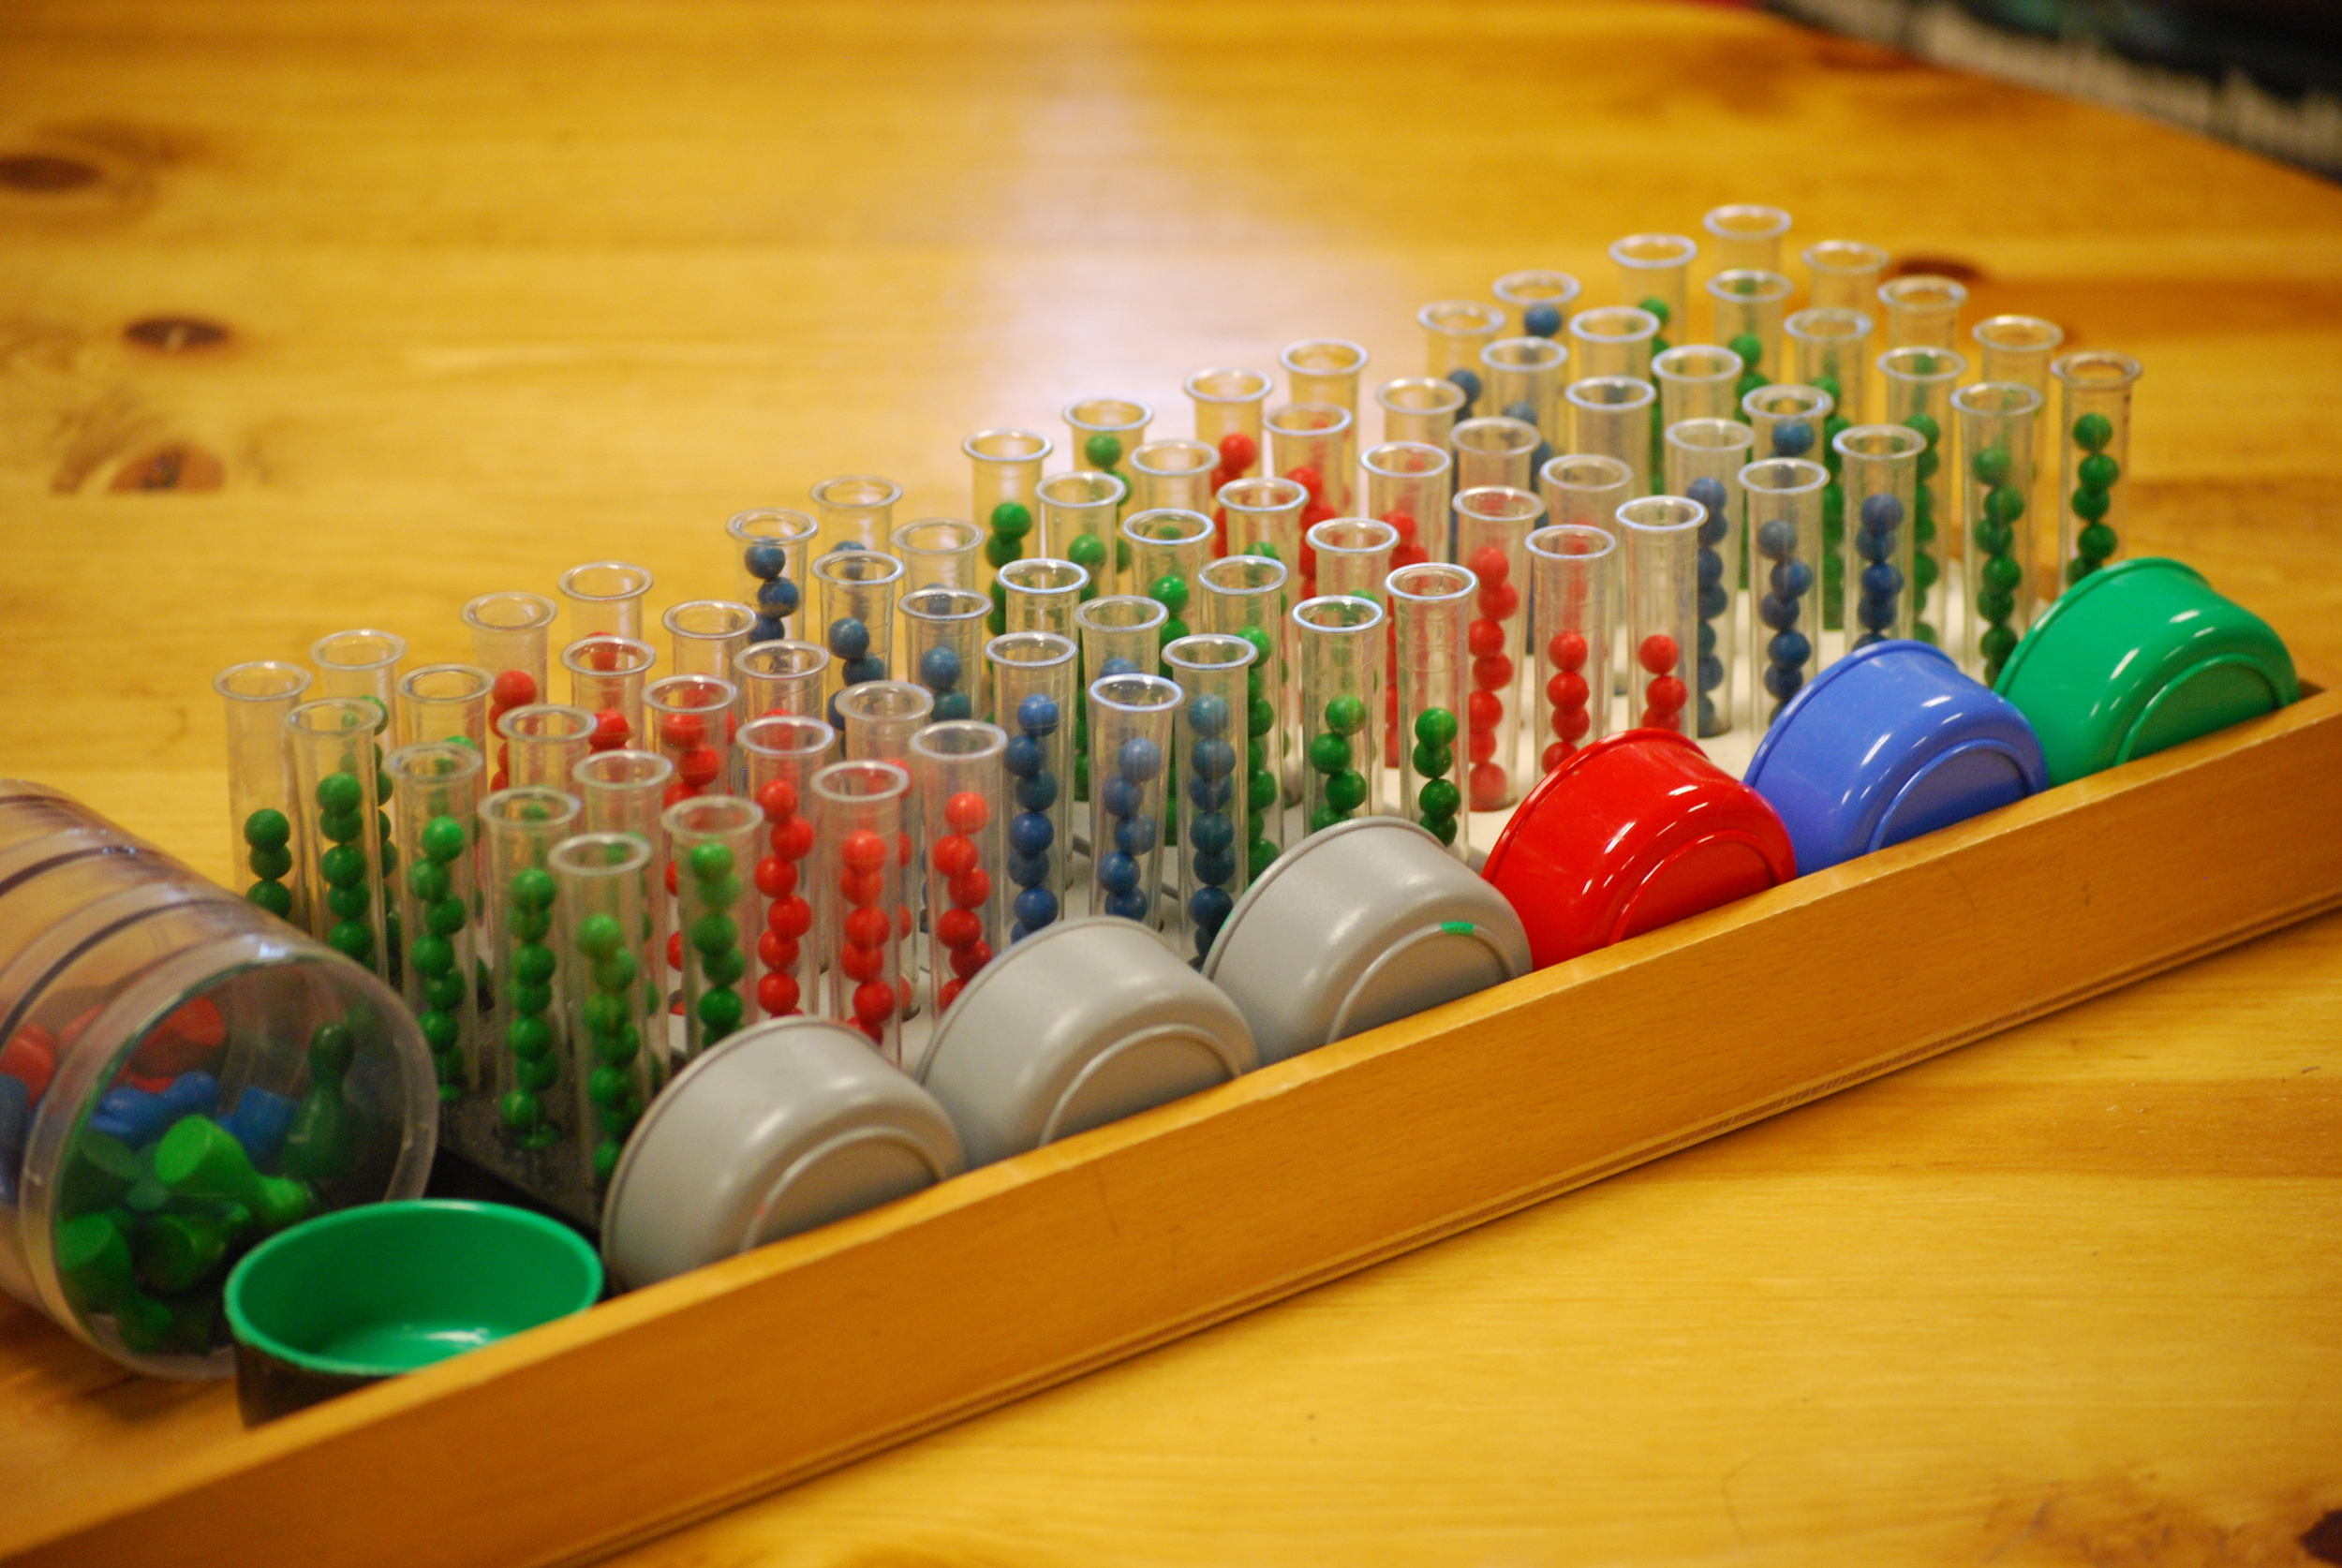 montessori test tube division.jpg